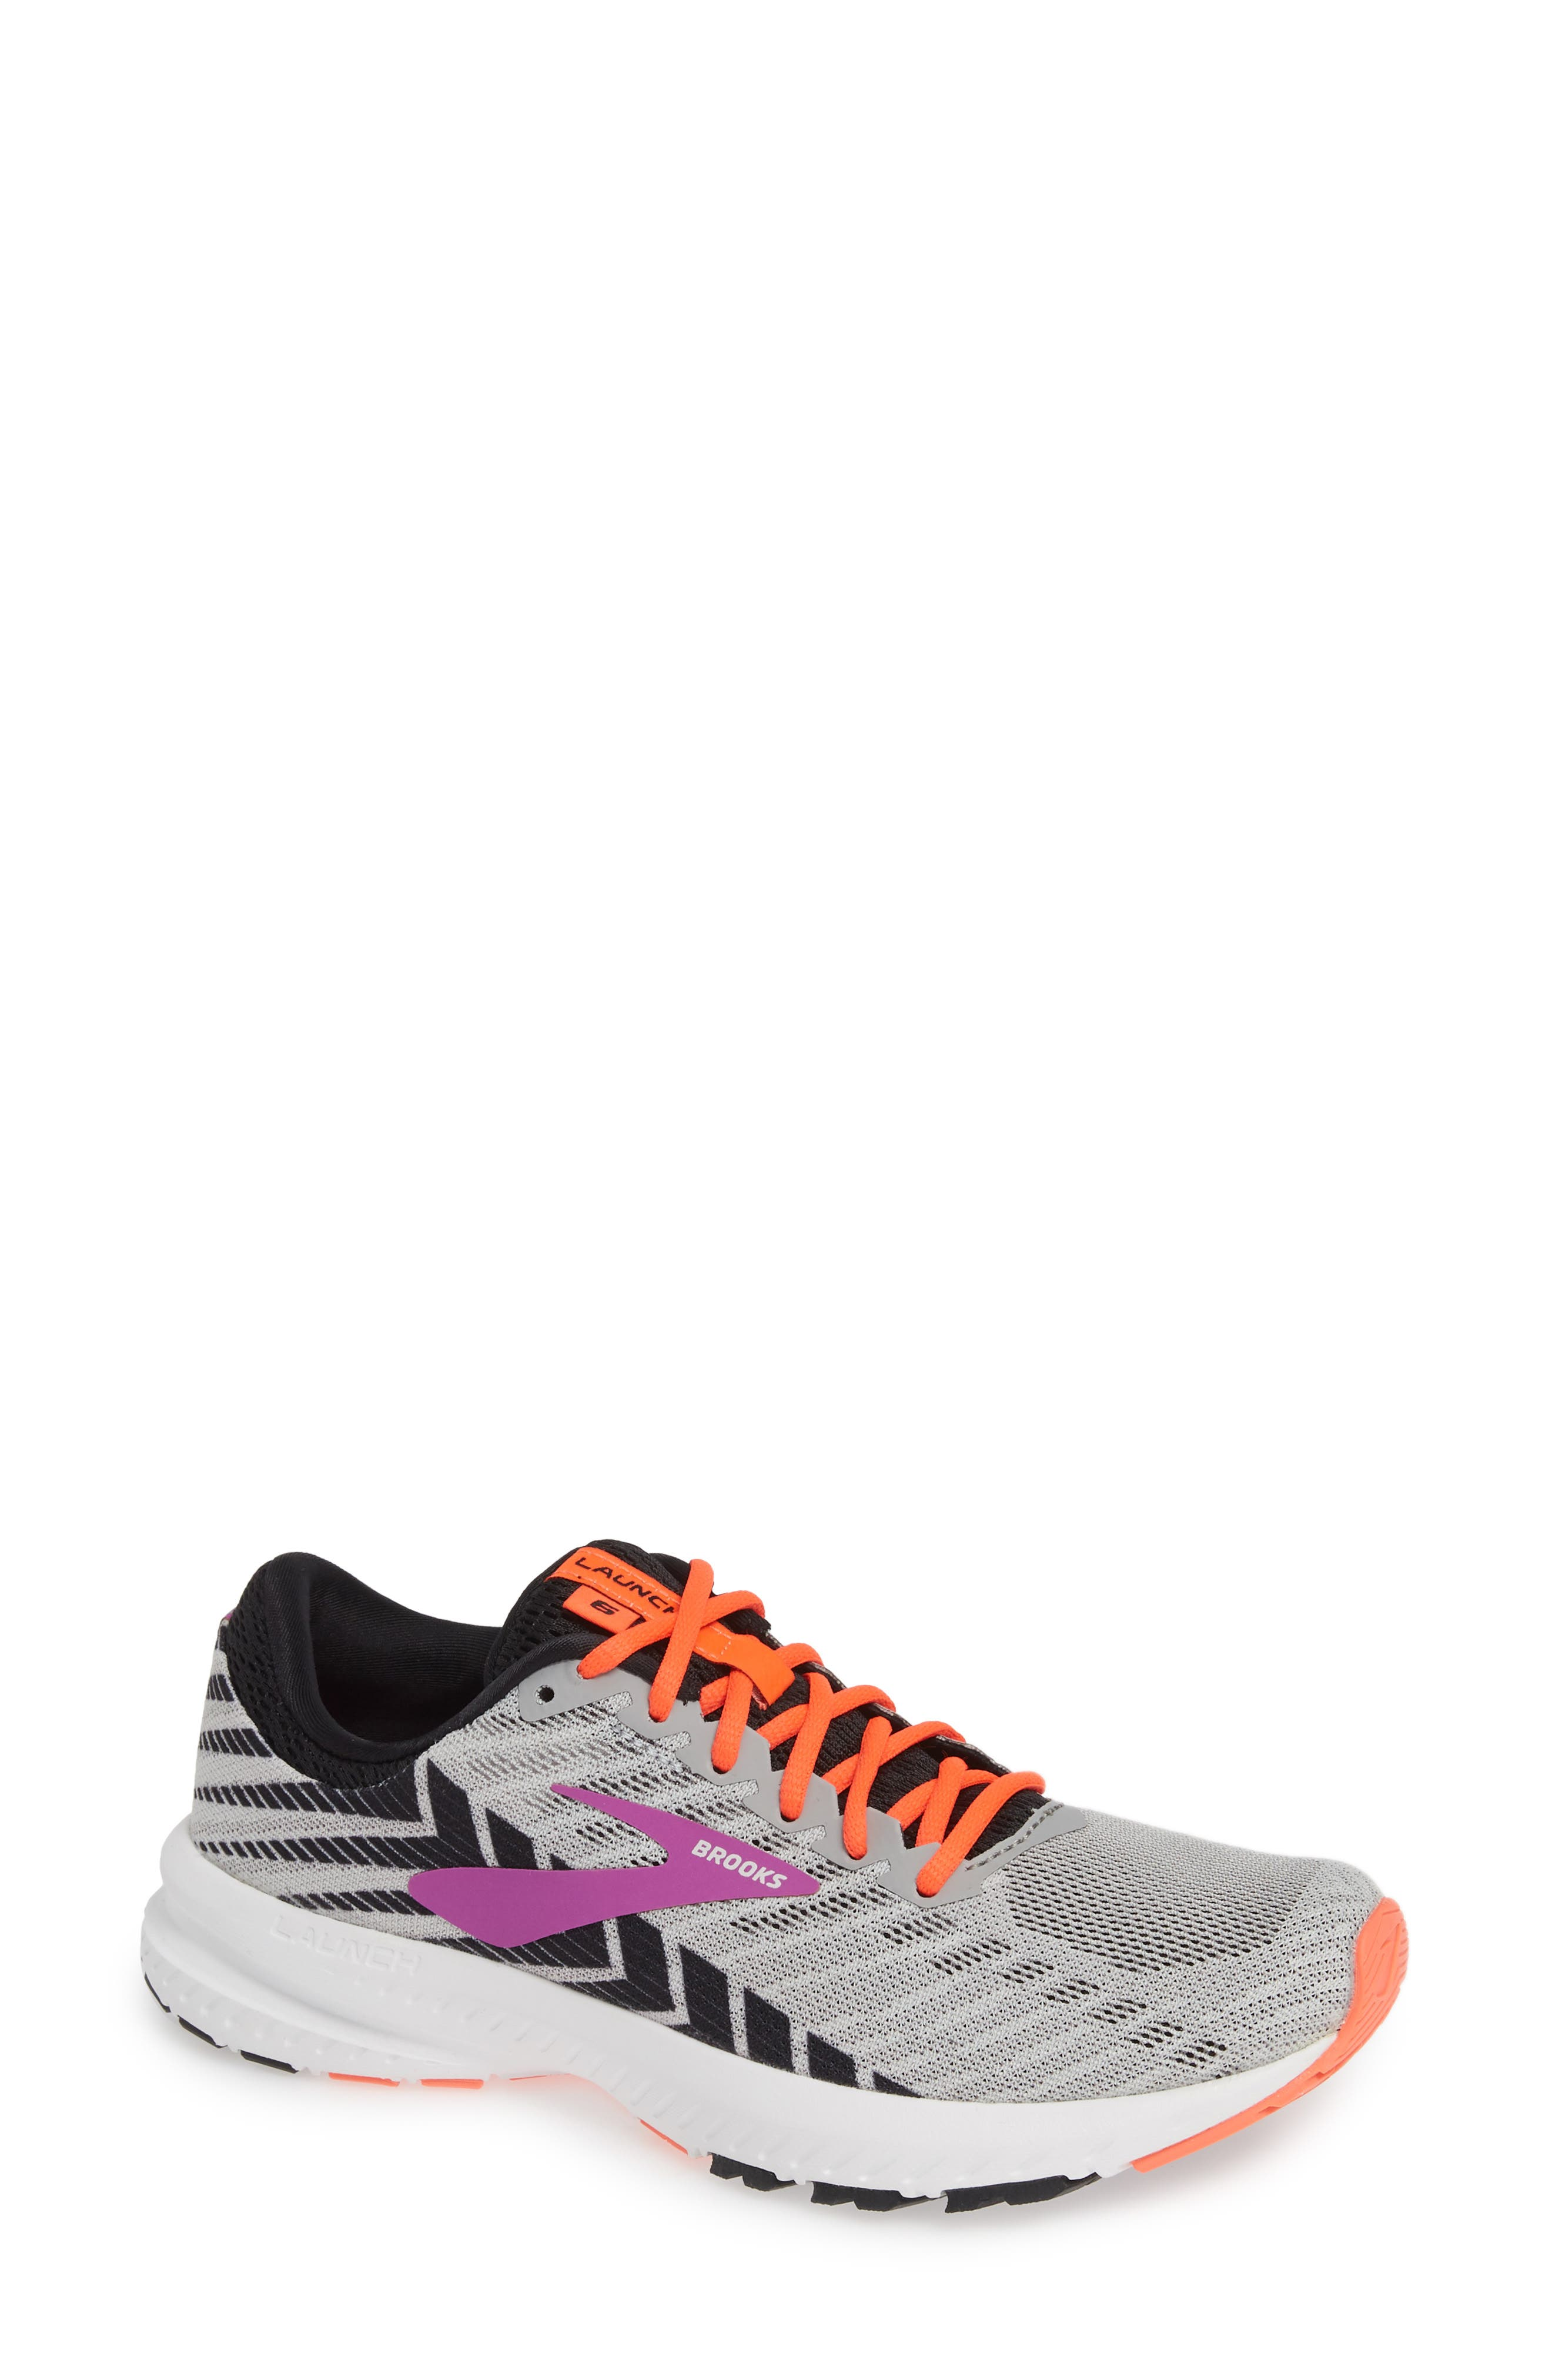 Launch 6 Running Shoe,                             Main thumbnail 1, color,                             GREY/ BLACK/ PURPLE